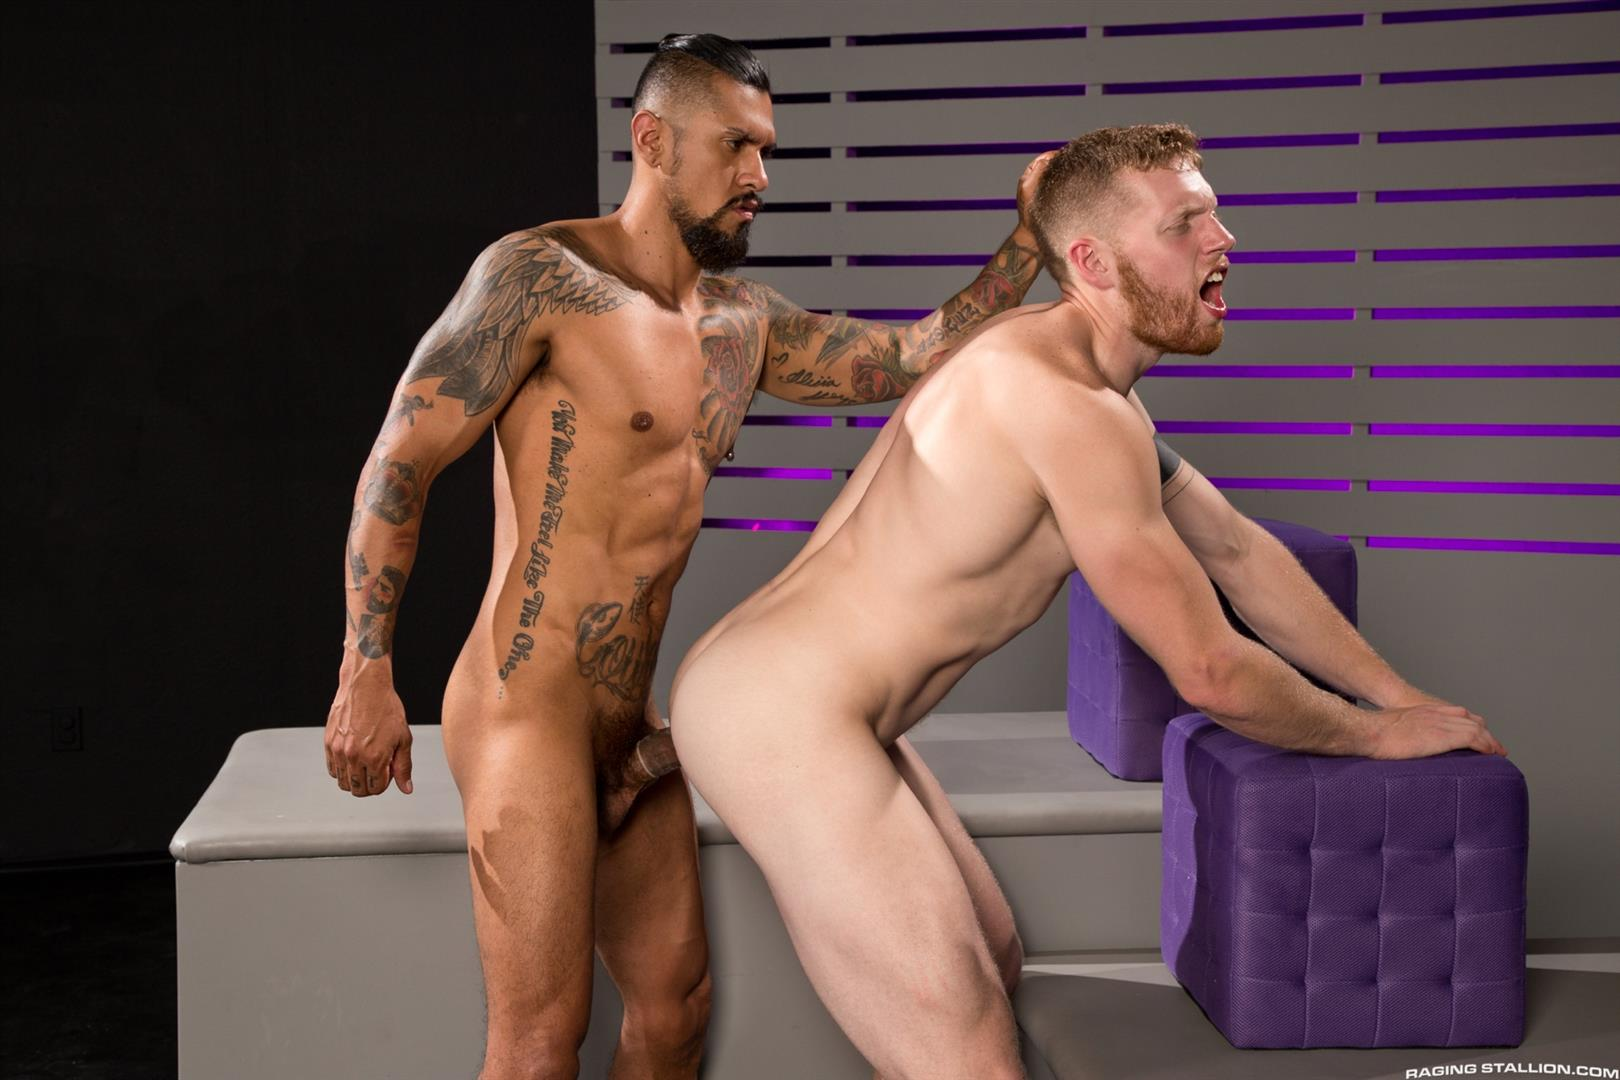 Raging Stallion Boomer Banks and Cass Bolton Big Uncut Cock Redhead Amateur Gay Porn 12 Boomer Banks Fucking Redhead Muscle Hunk Cass Bolton